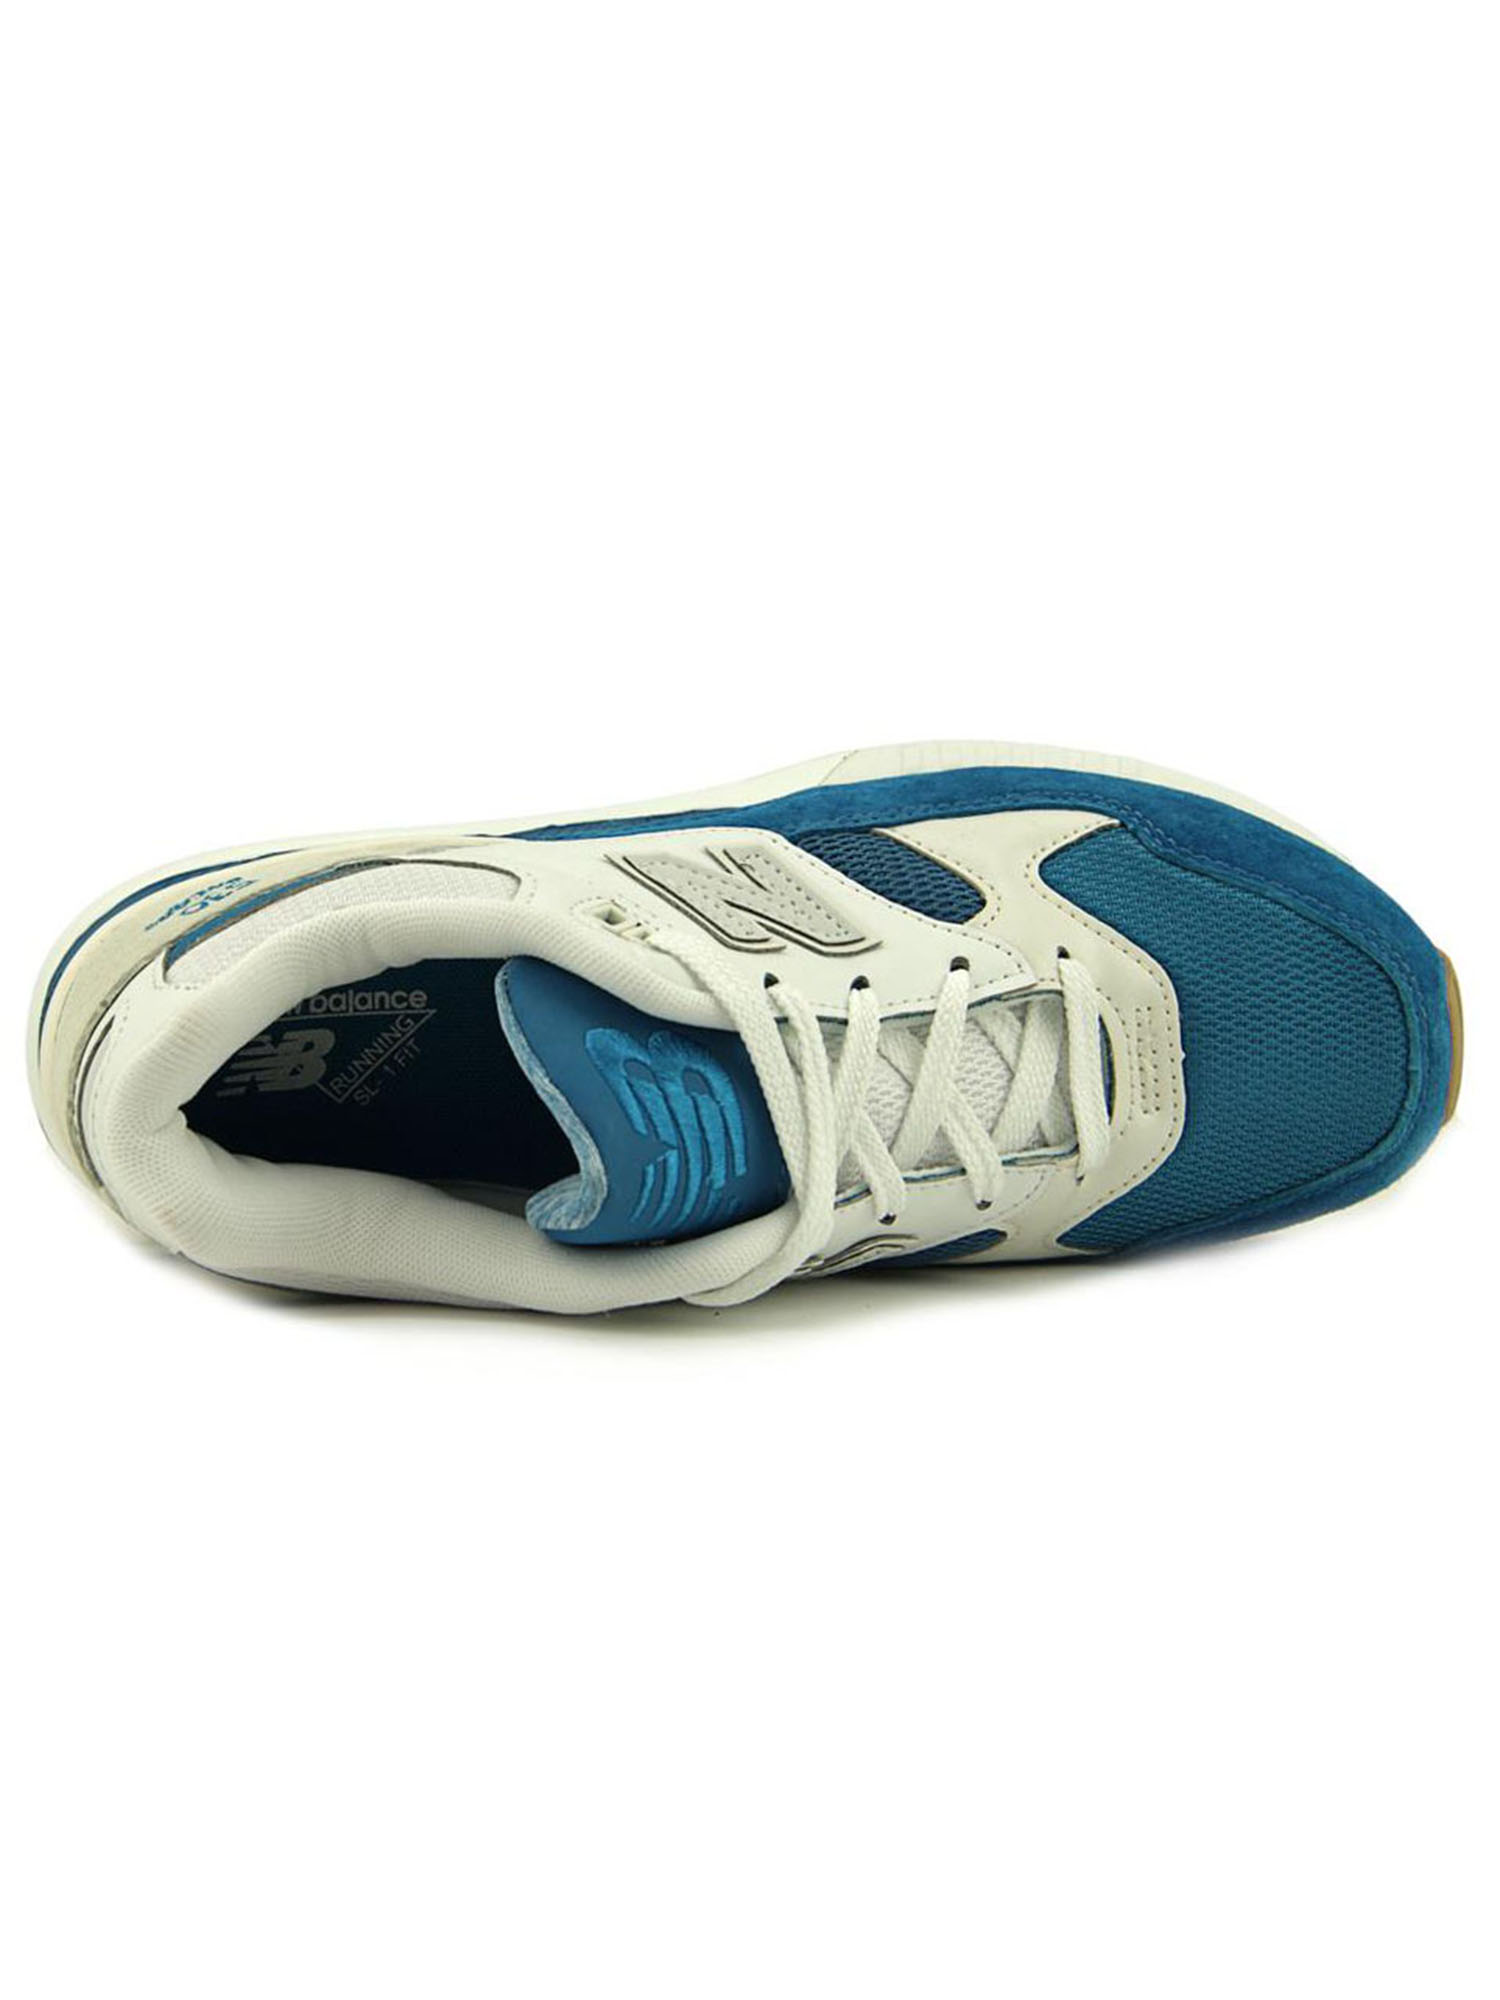 New Balance Women's 530 Summer Waves Running Shoes W530AA Teal/White